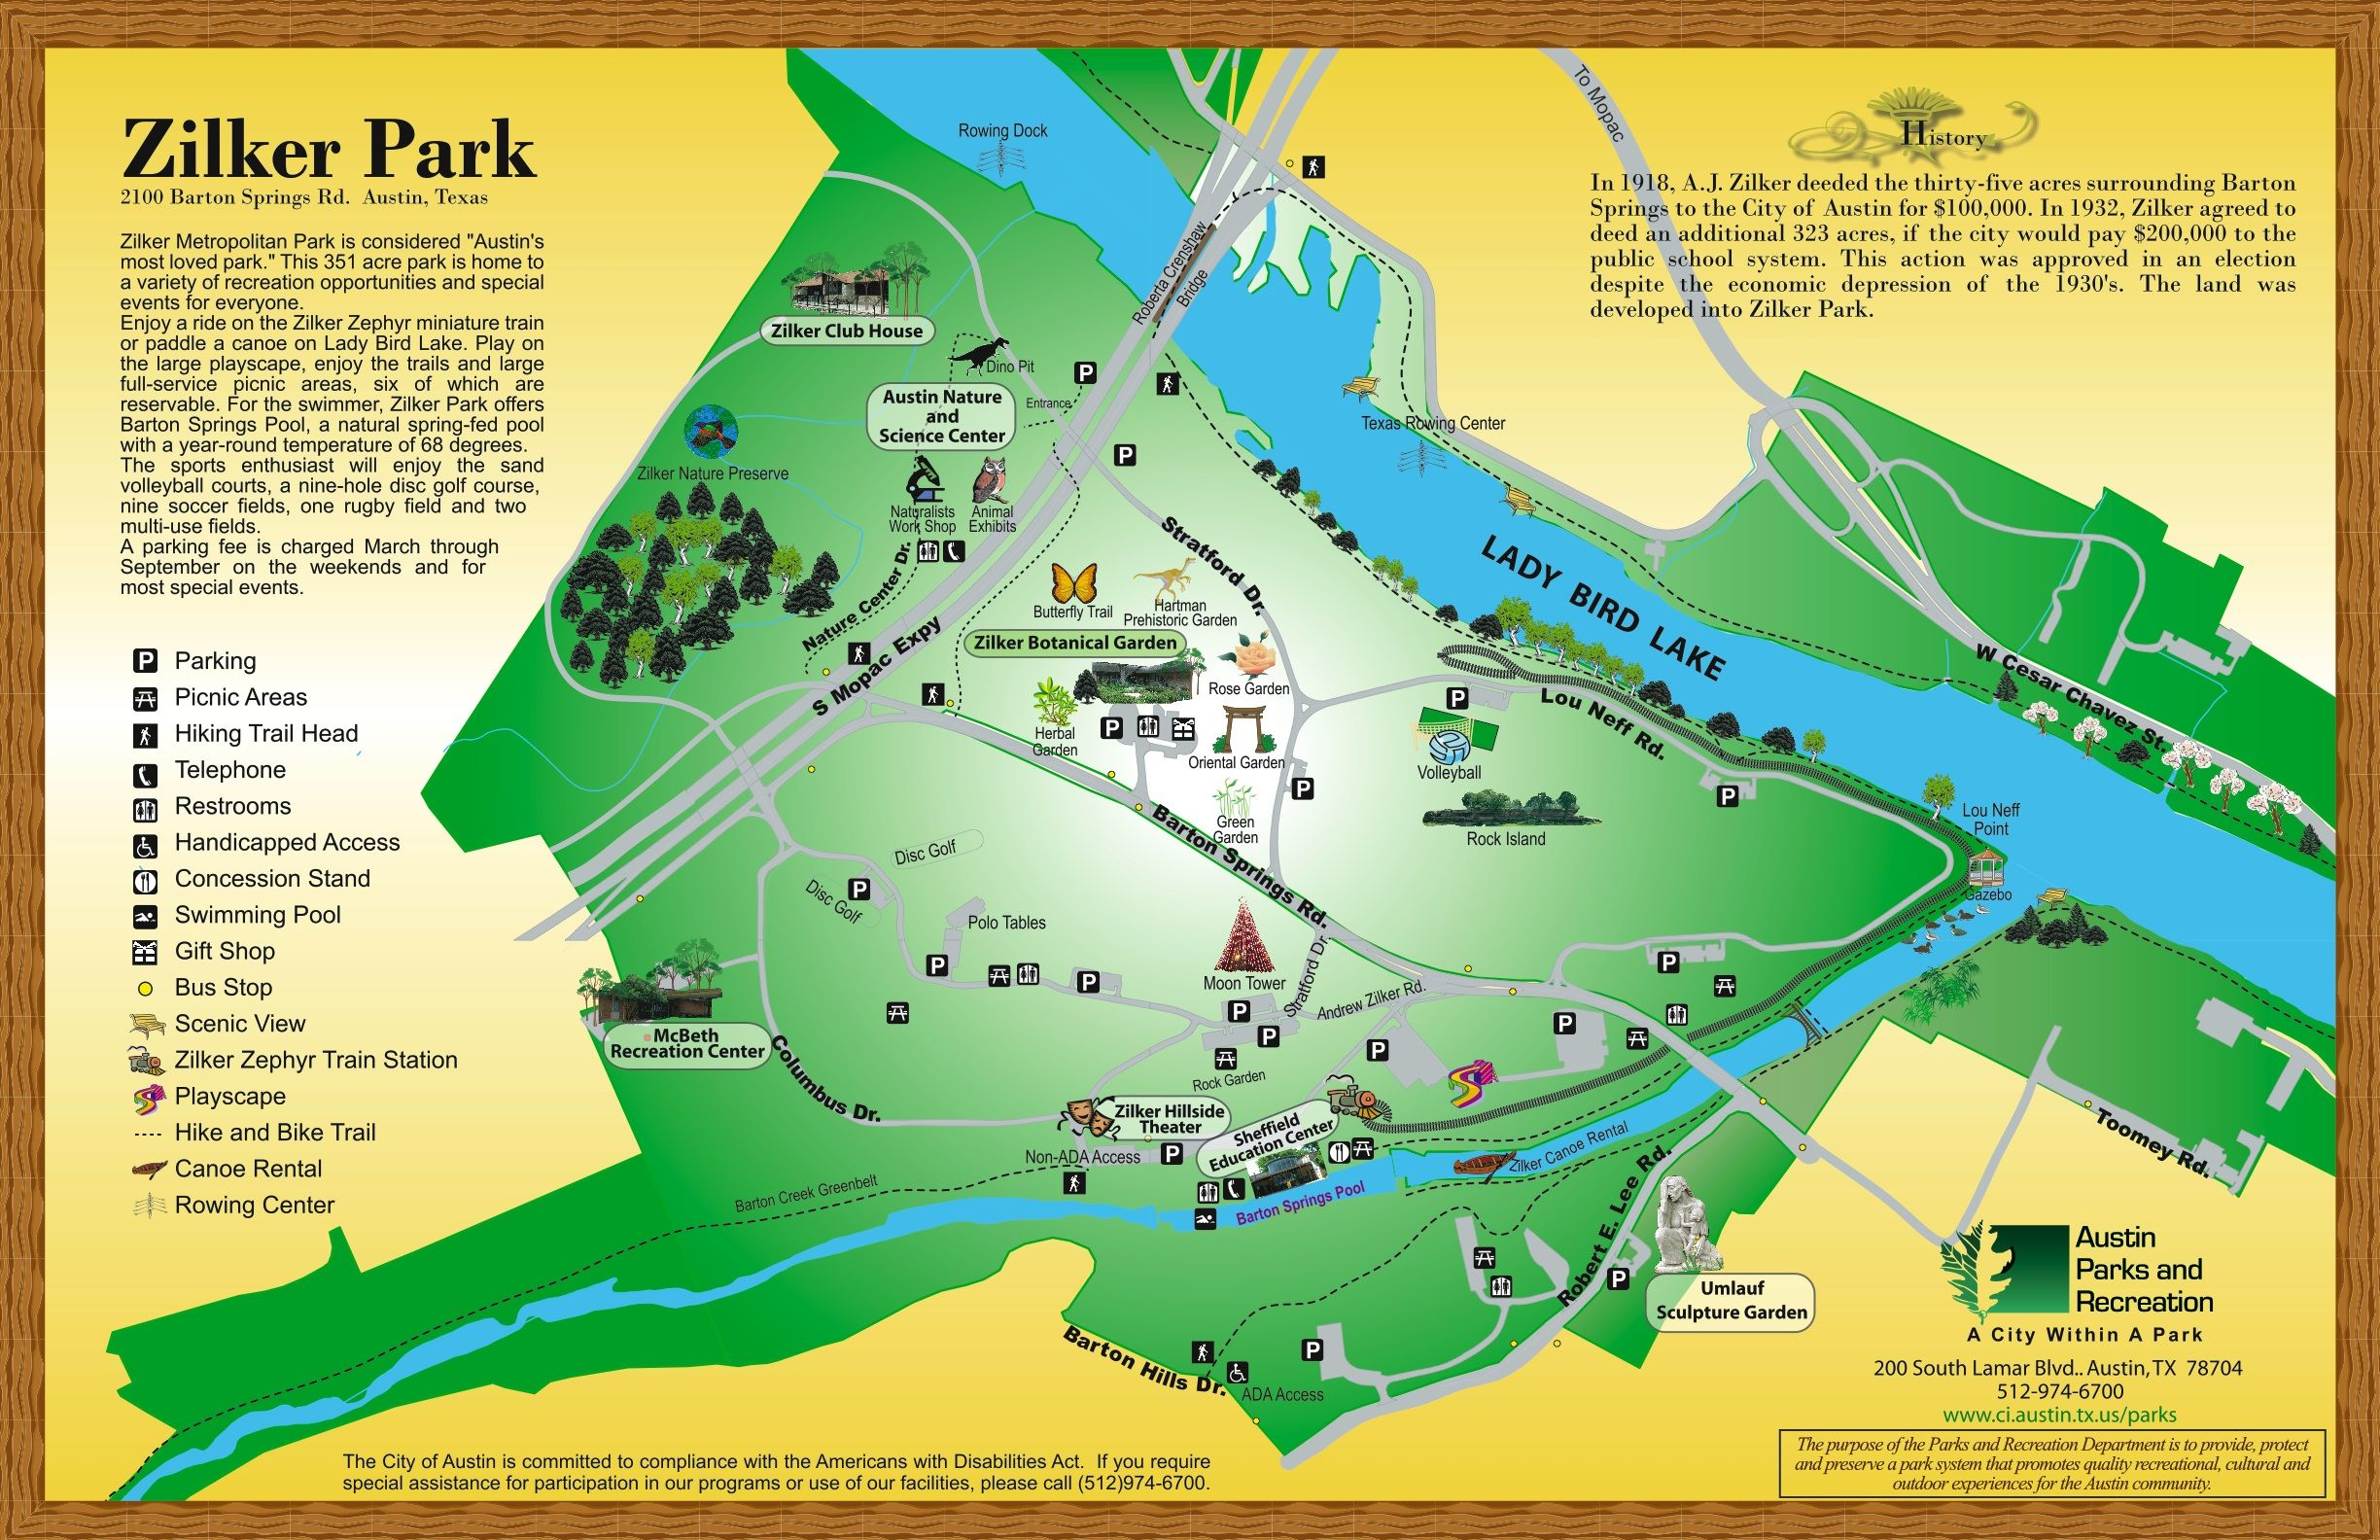 Zilker Park Map on austin map, lakeline mall map, san marcos map, mckinney falls state park map, fair park map, the pageant map, edwards aquifer map, circuit of the americas map, camp mabry map, the national map, stadium map, jj pickle research center map, iroquois amphitheater map, madison square garden map, highland mall map, dell diamond map, wisconsin state parks map, piedmont park map, red rocks amphitheatre map,